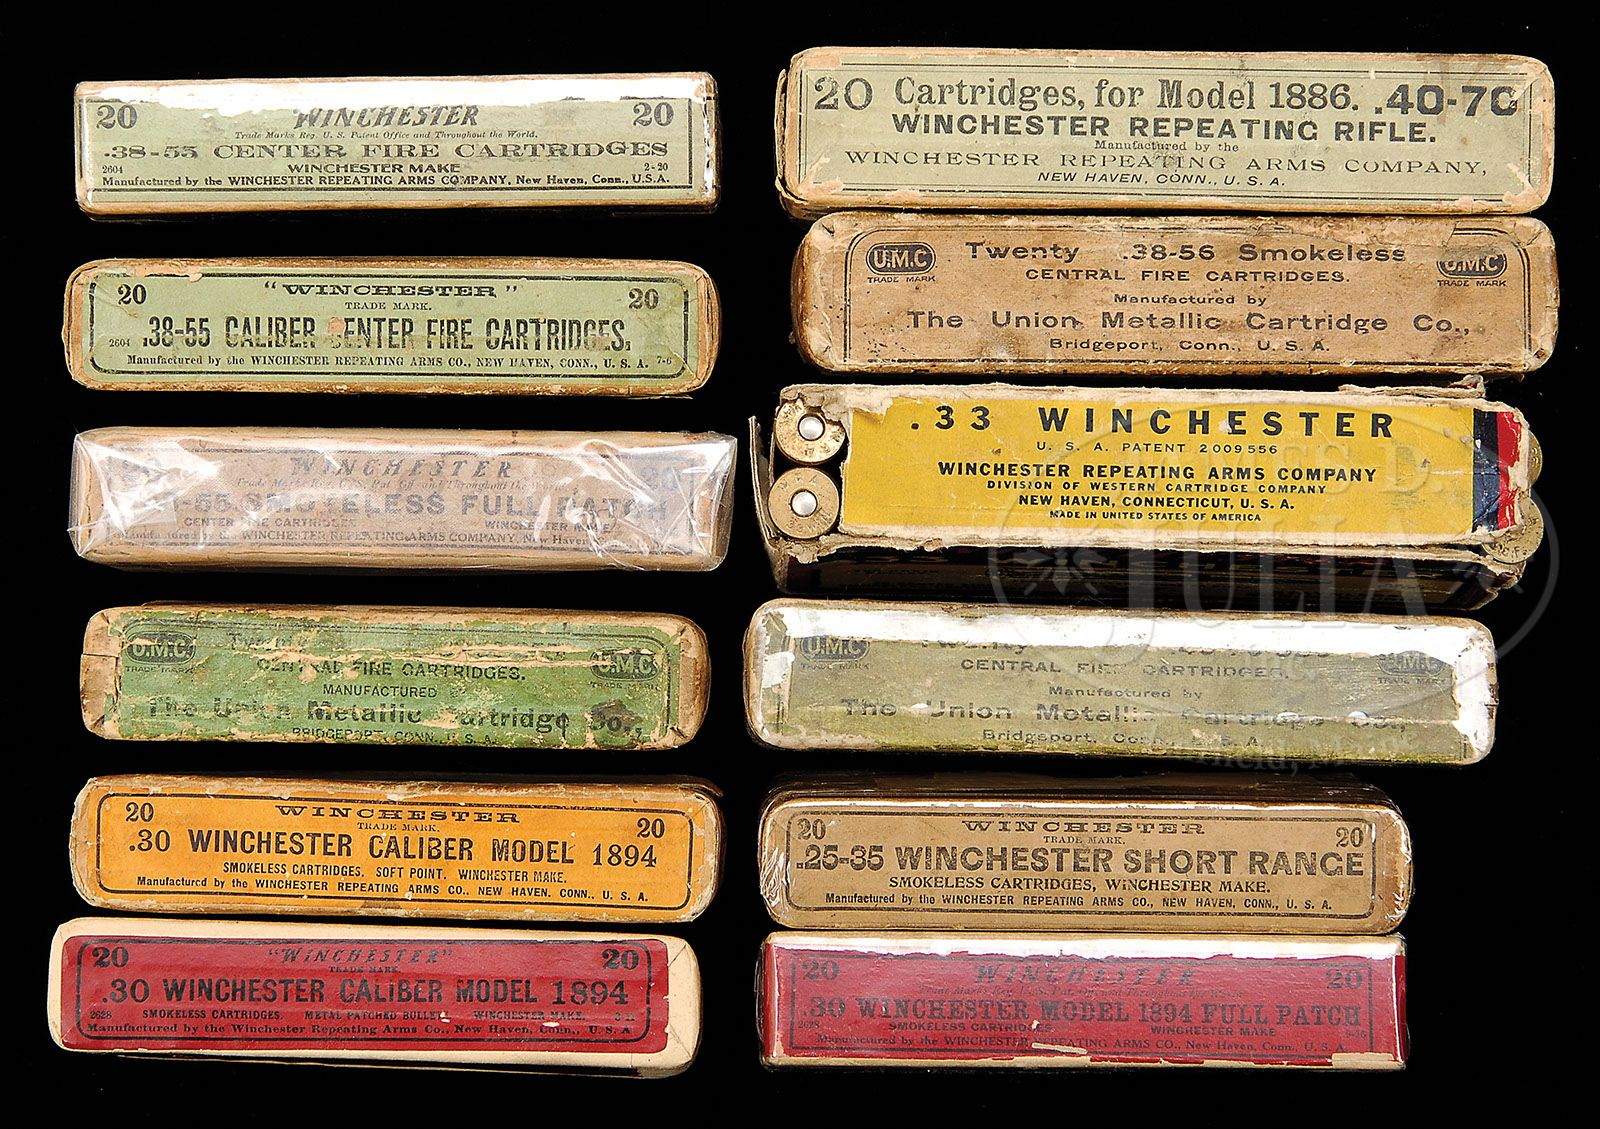 LOT OF 40 BOXES OF AMMUNITION FOR THE MODEL 1886 WINCHESTER